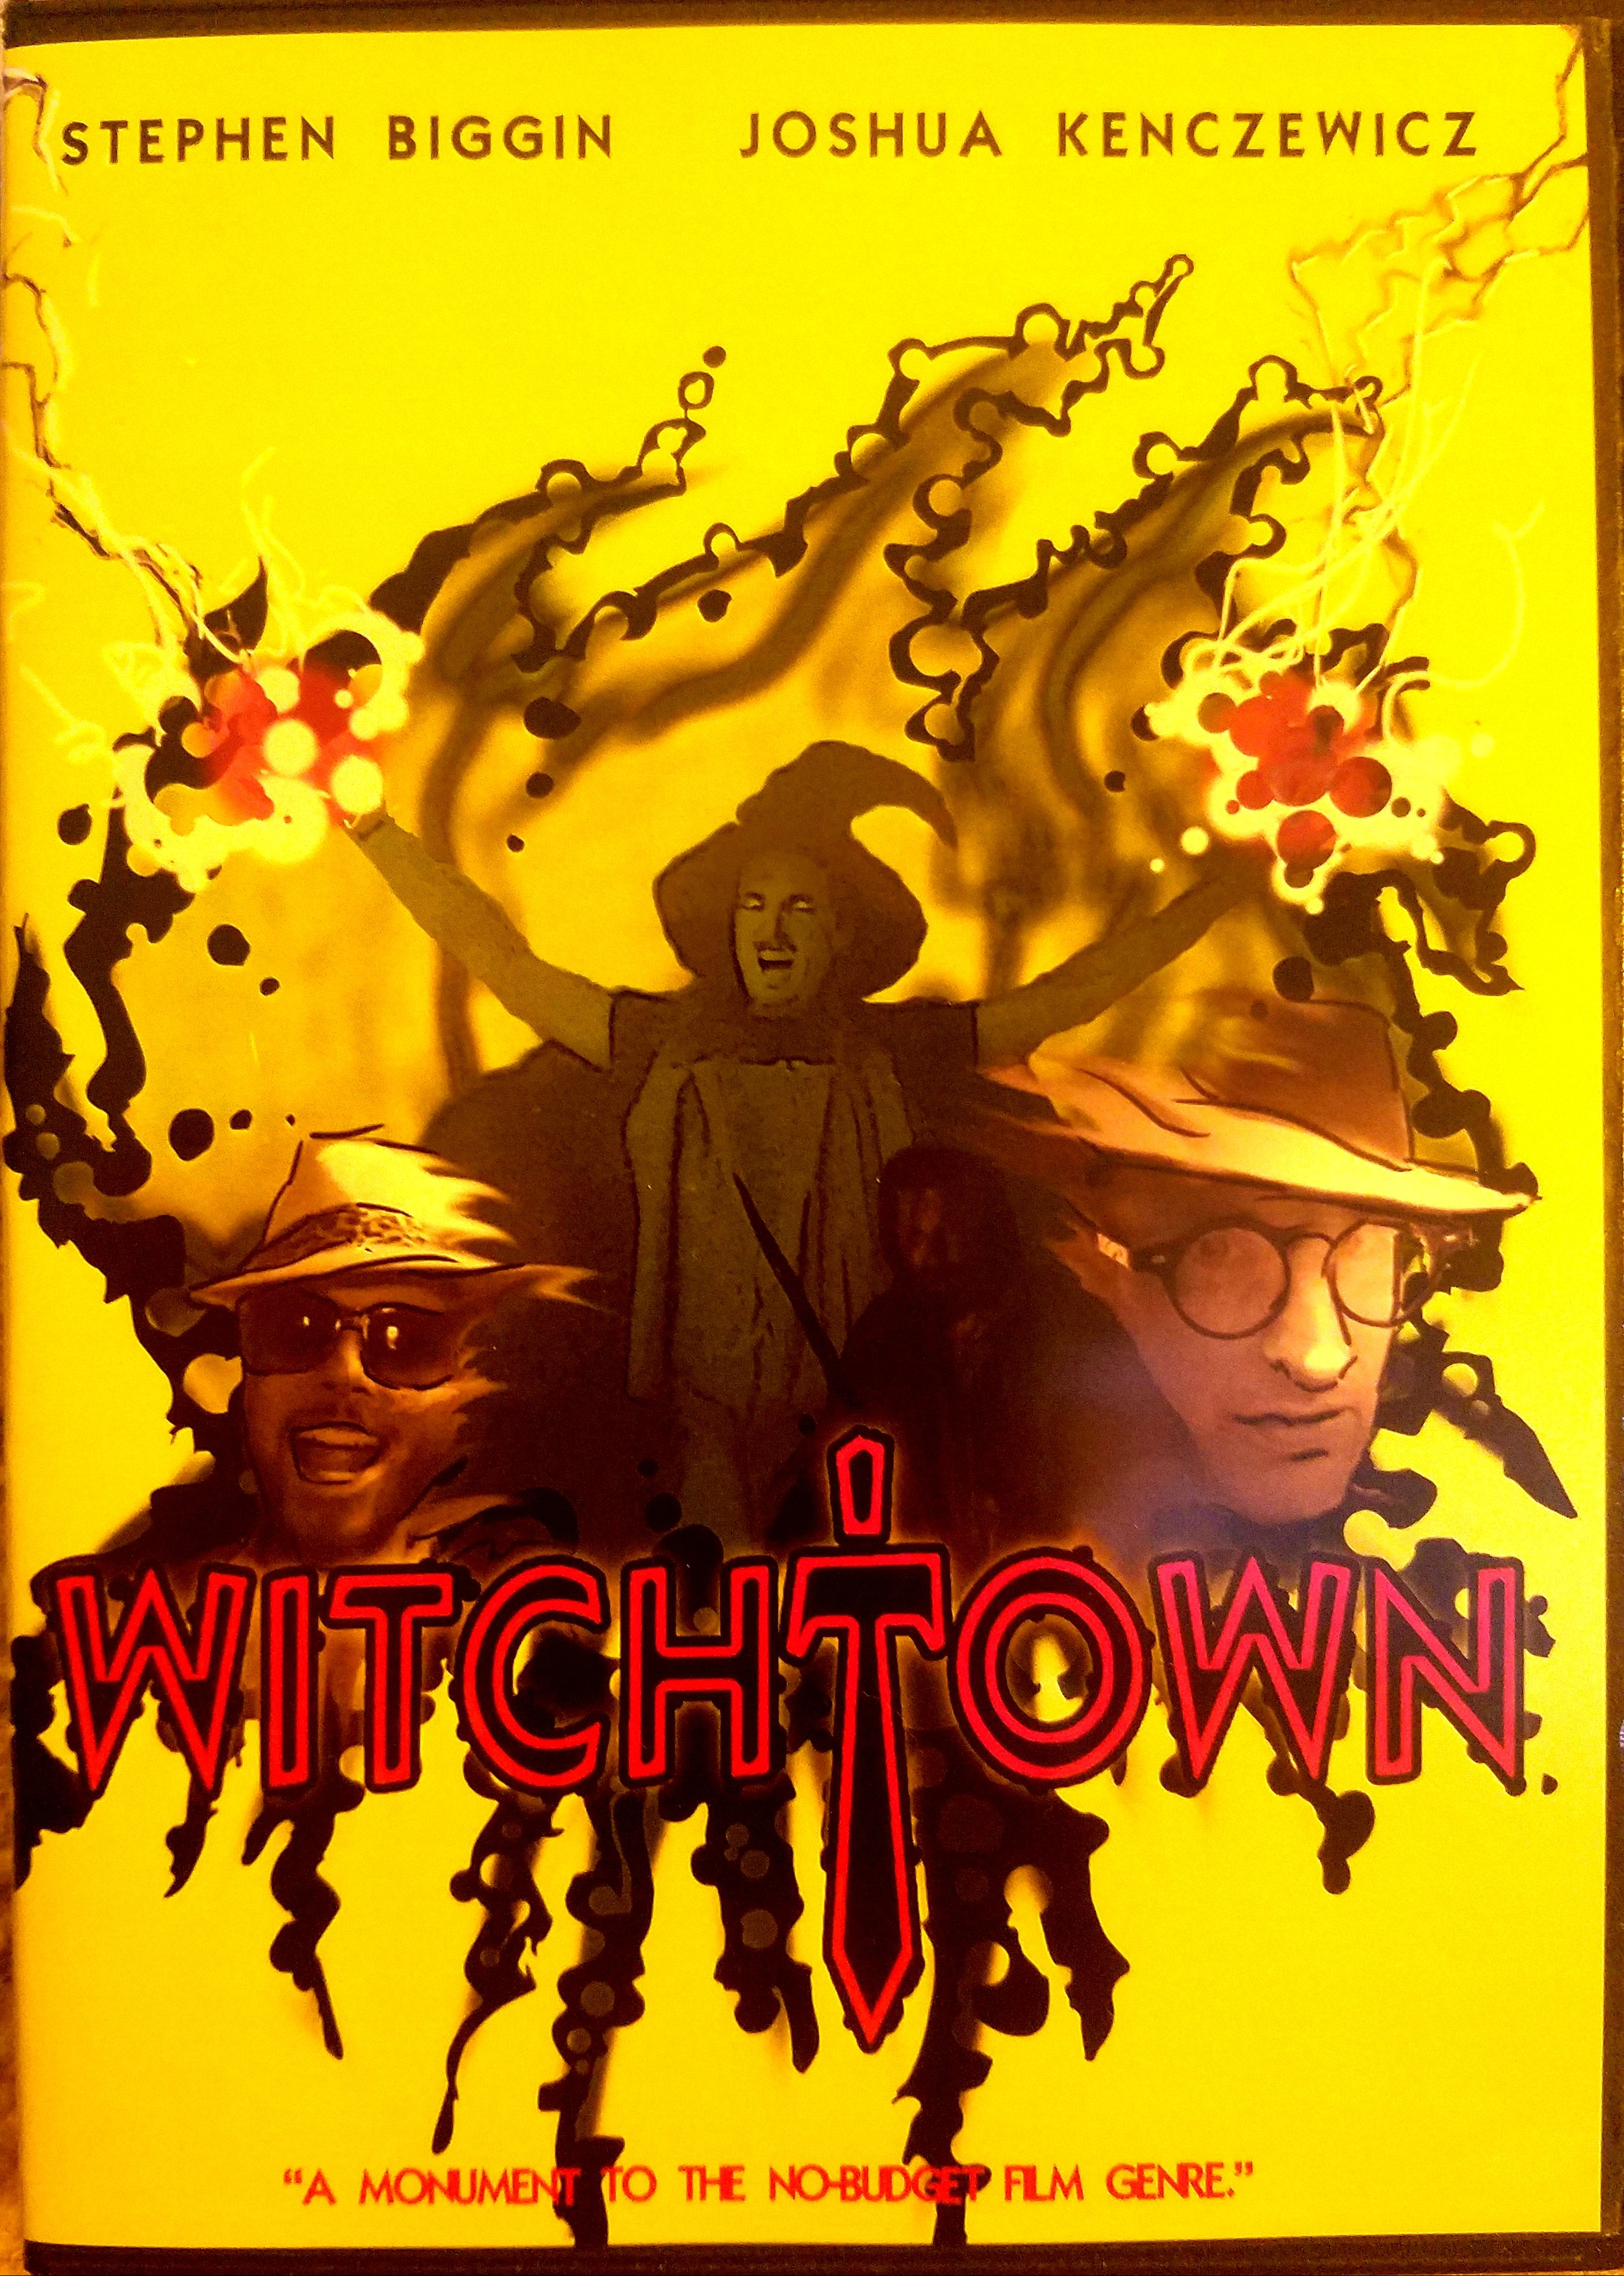 The beautiful disc art of WITCHTOWN -